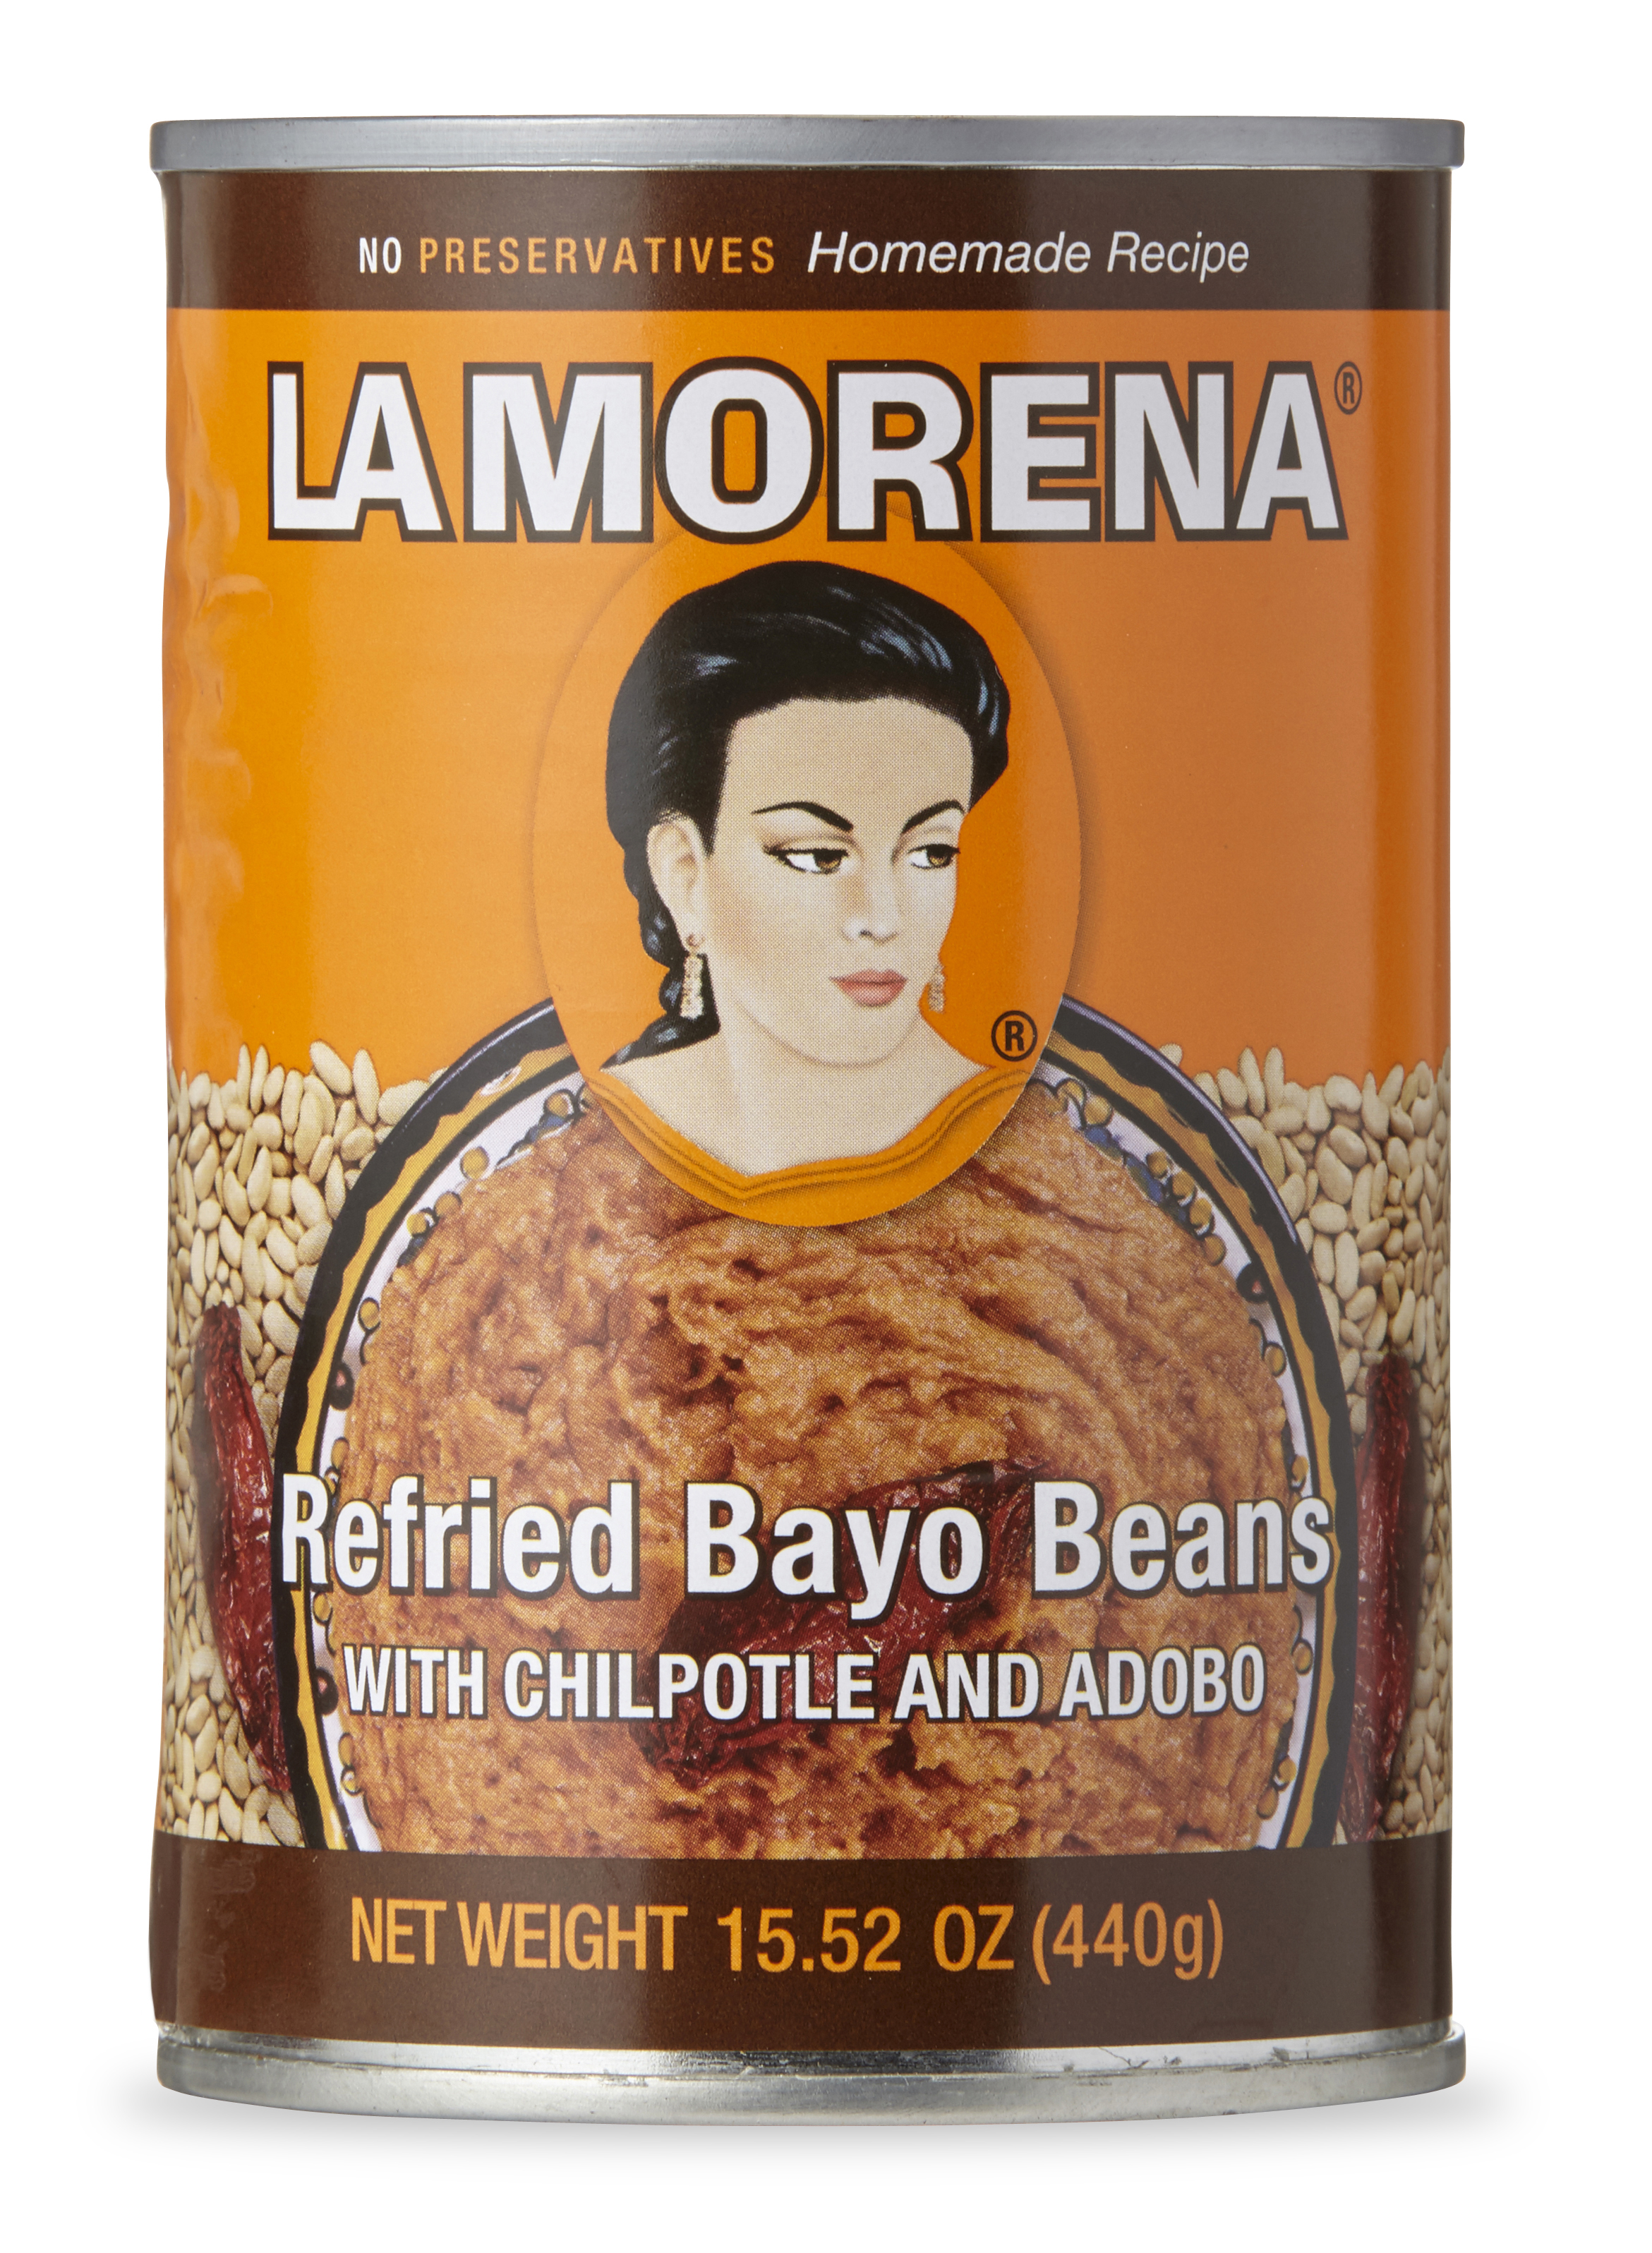 La Morena_refried bayo beans with chipotle and adobo.jpg